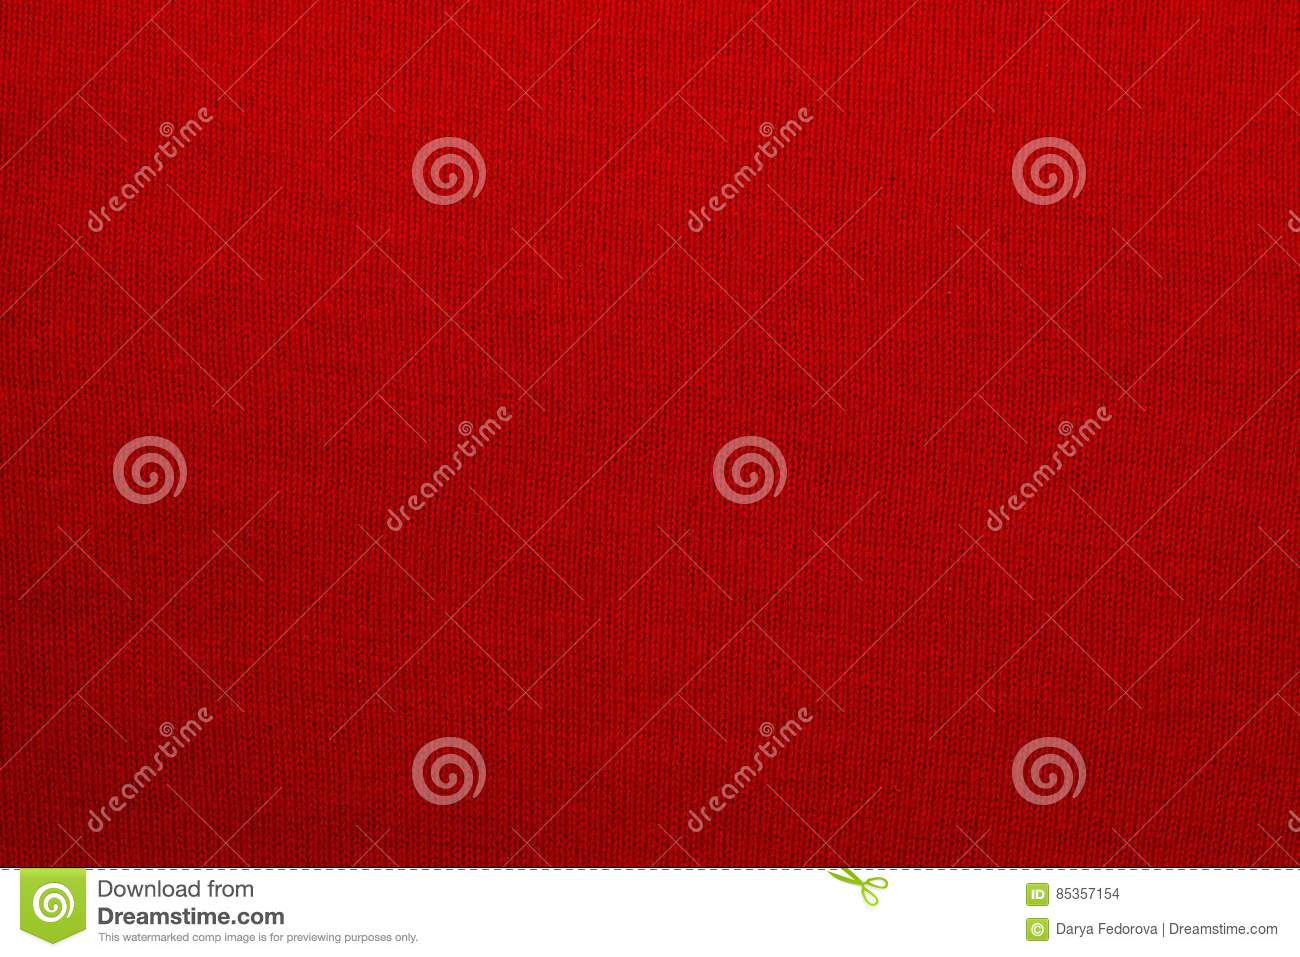 The texture of a knitted woolen fabric red